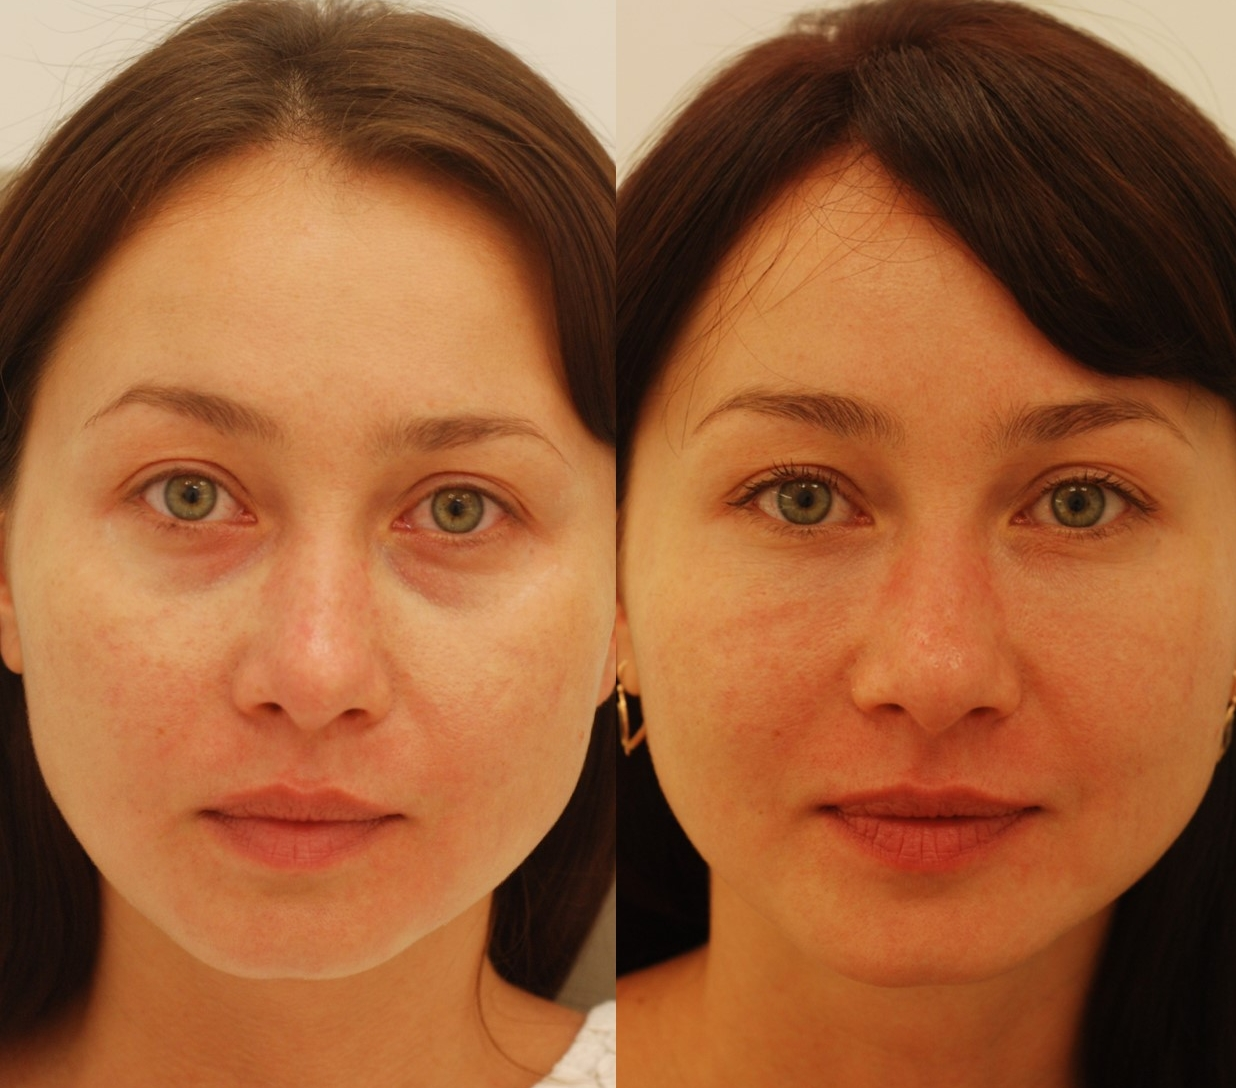 Actual patient of Dr. Devgan, before and after tear trough injection